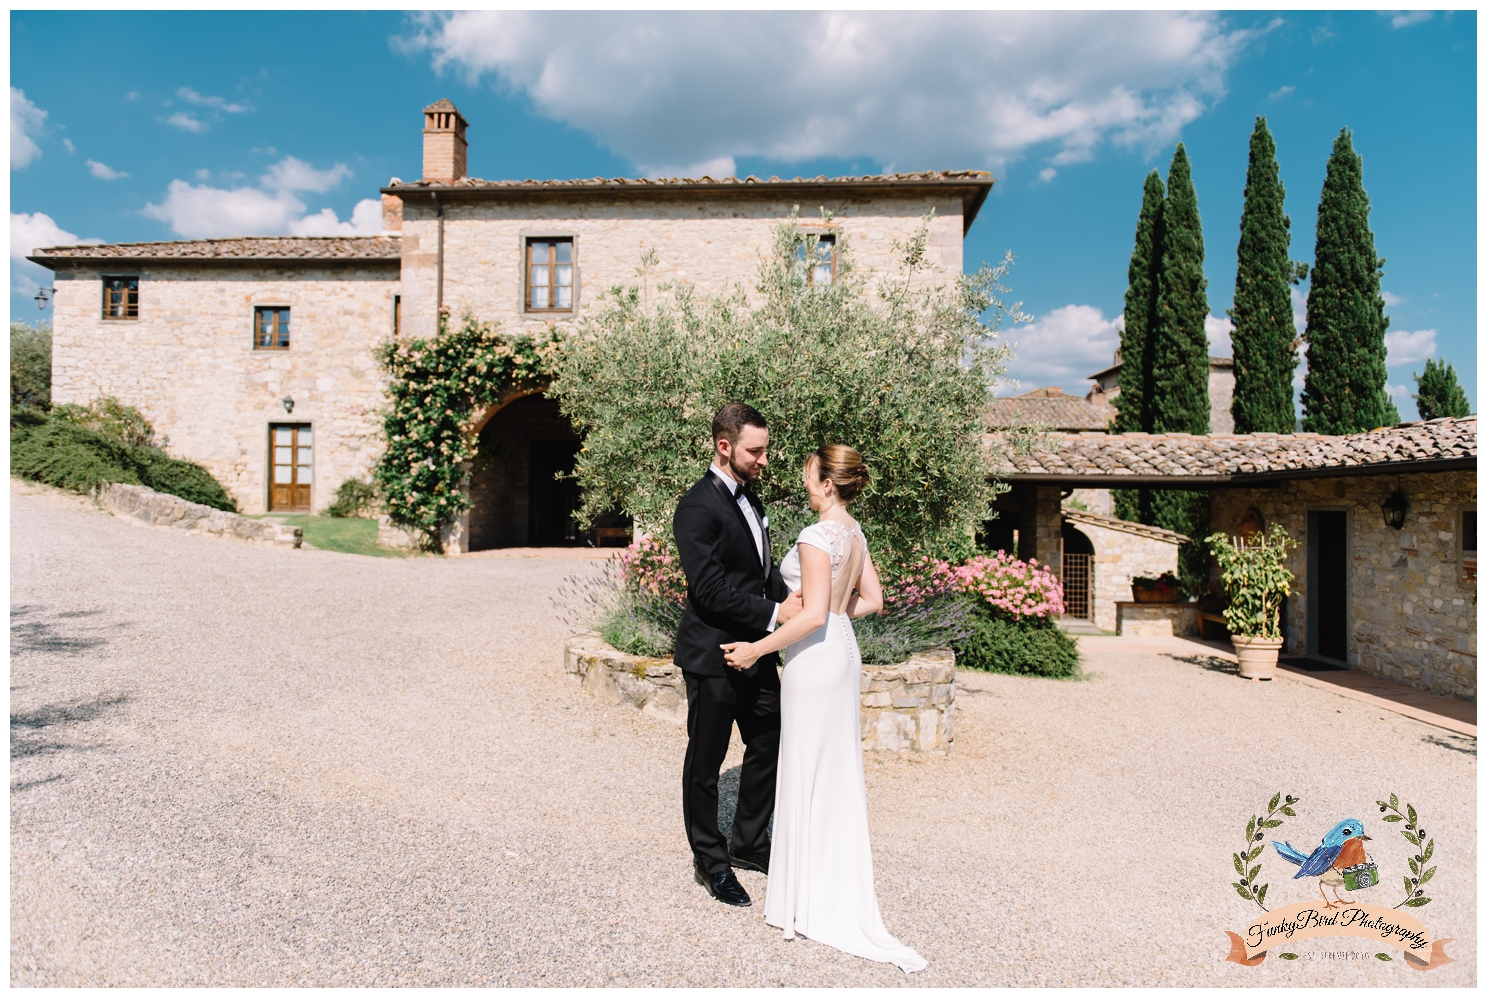 Best Wedding Photographer in Tuscany, Best Wedding Photographer in Florence, Wedding Photographer Siena, Italian Wedding Photographer Tuscany, Wedding in Tuscany, Wedding in Florence, Wedding in Italy, Castello di Spaltenna , bruidsfotografie, bruidsfotograaf, bruidsfotograaf amsterdam, concept weddings nl